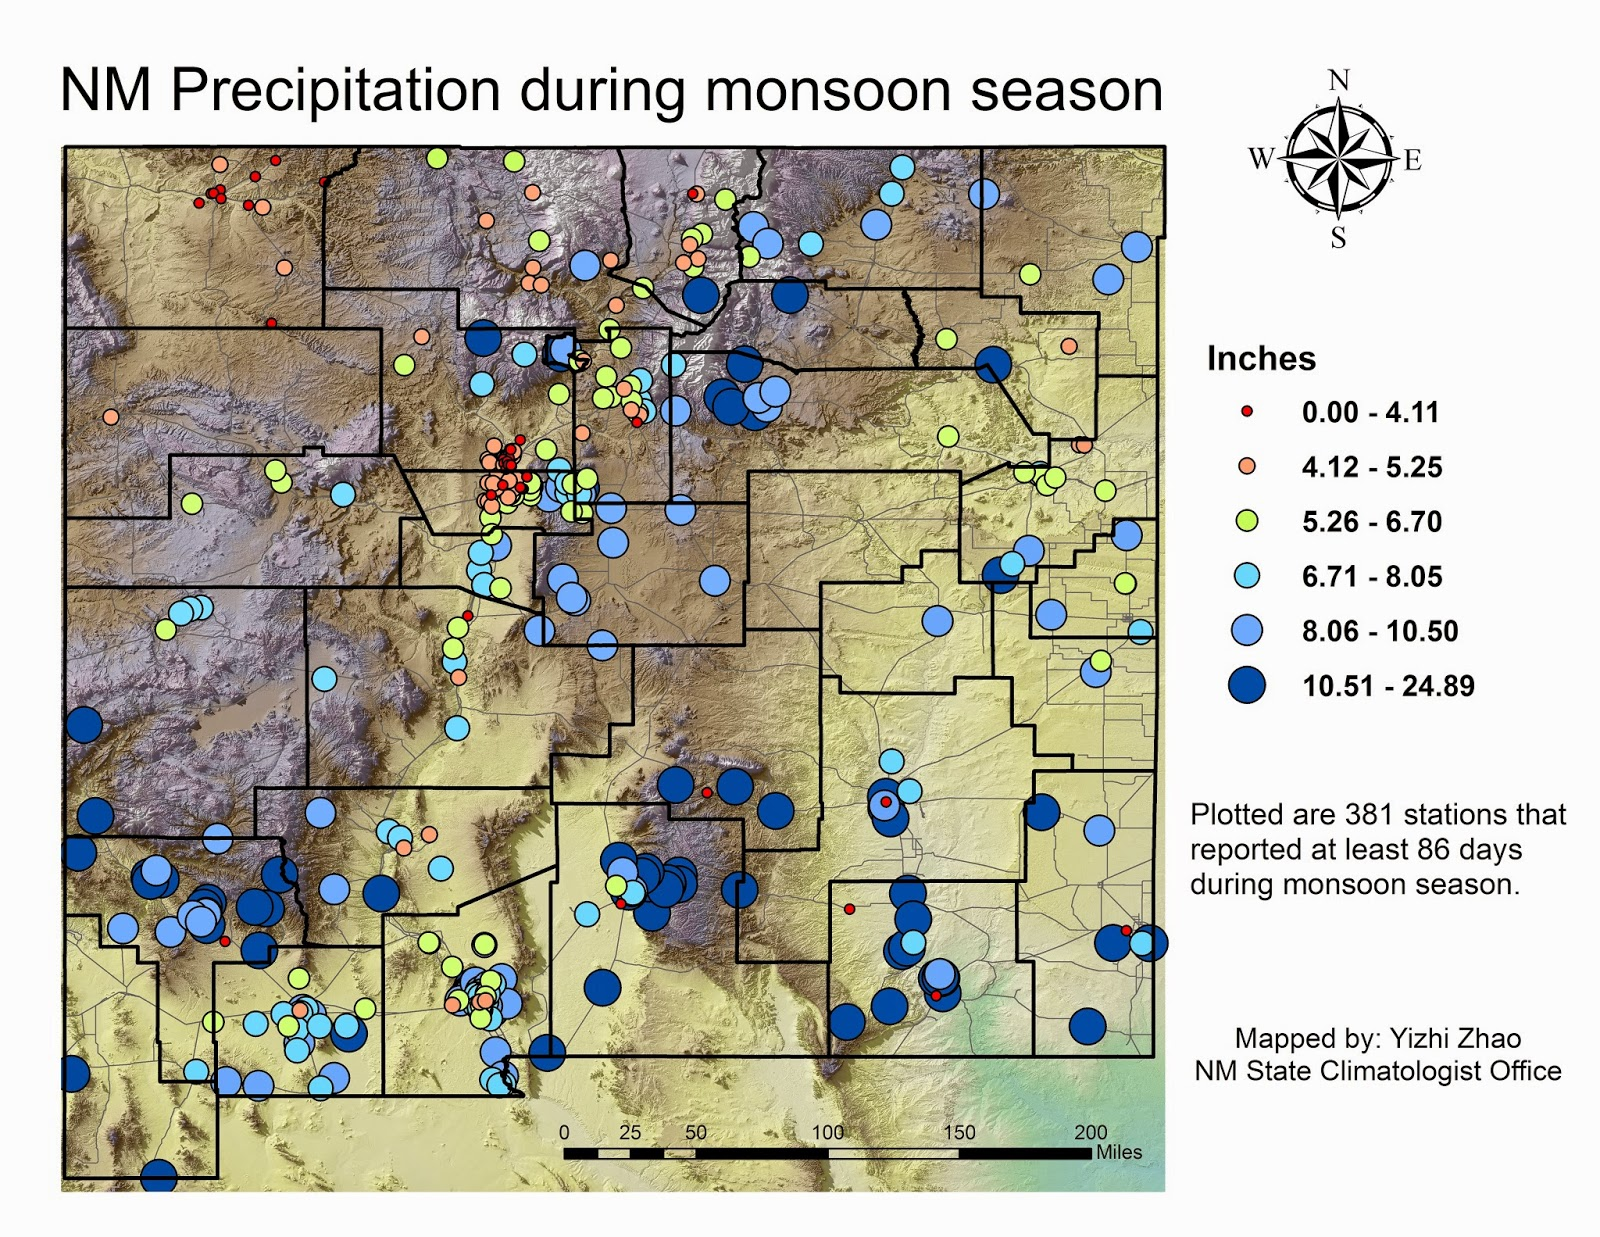 map 1 new mexico total precipitation during monsoon season mapped by yizhi zhao from nm state climatologist office